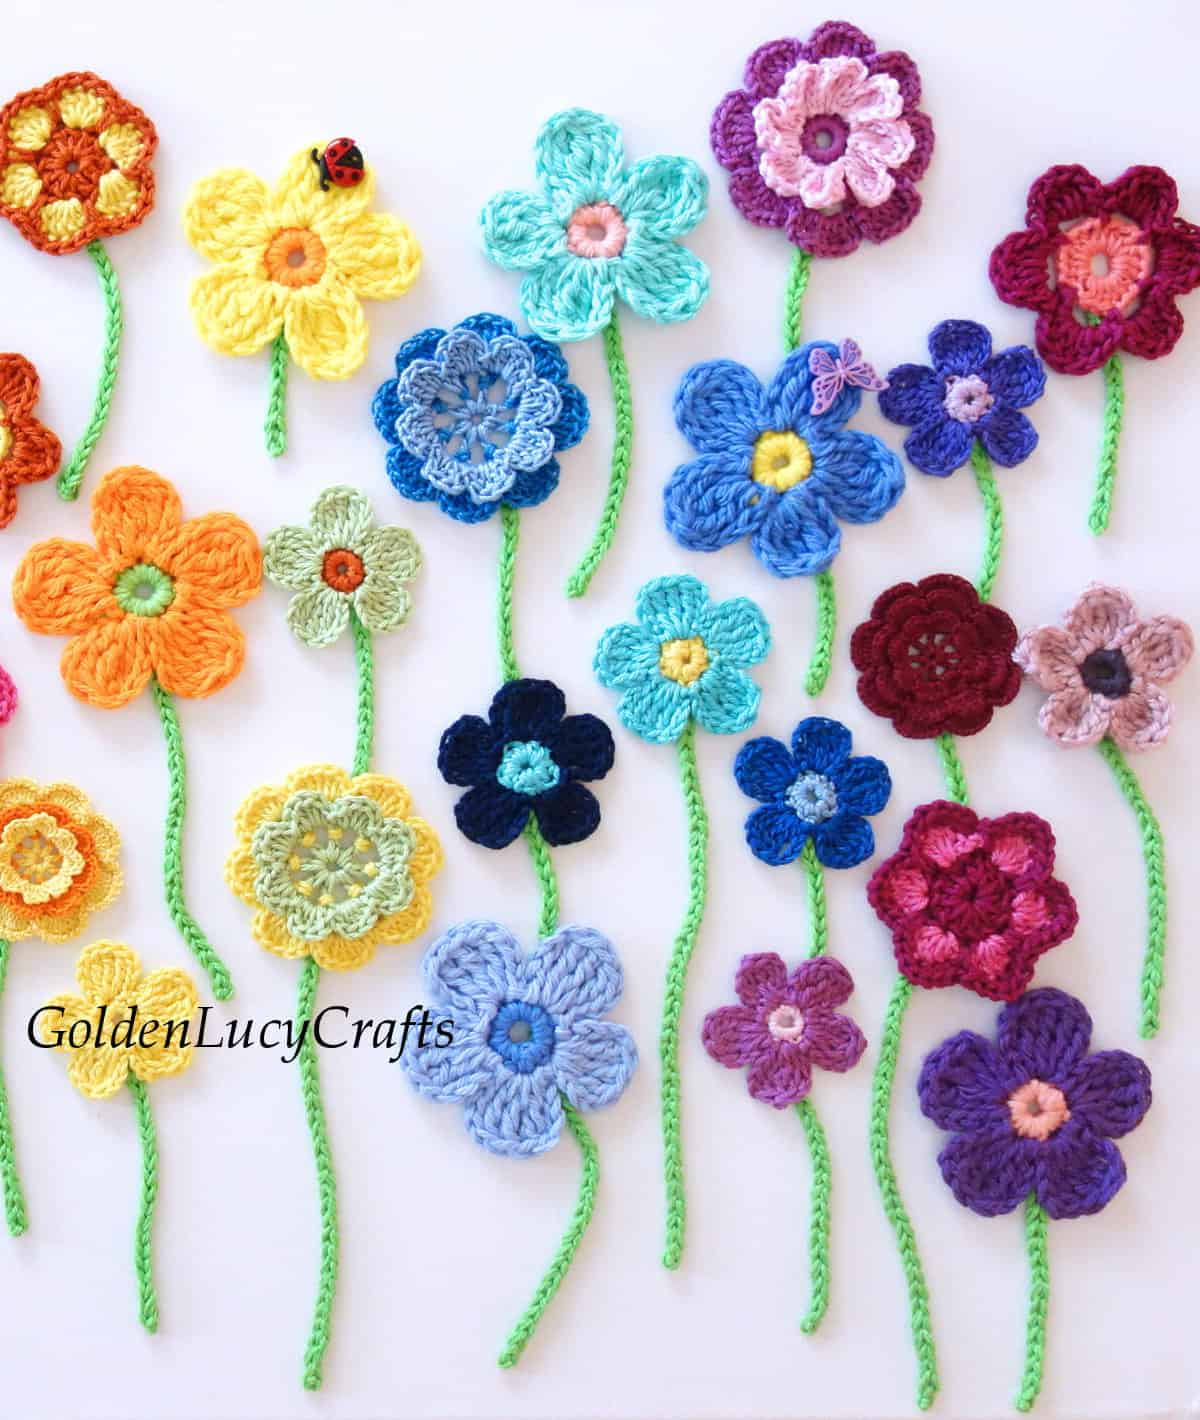 Crocheted flowers with stems applique.